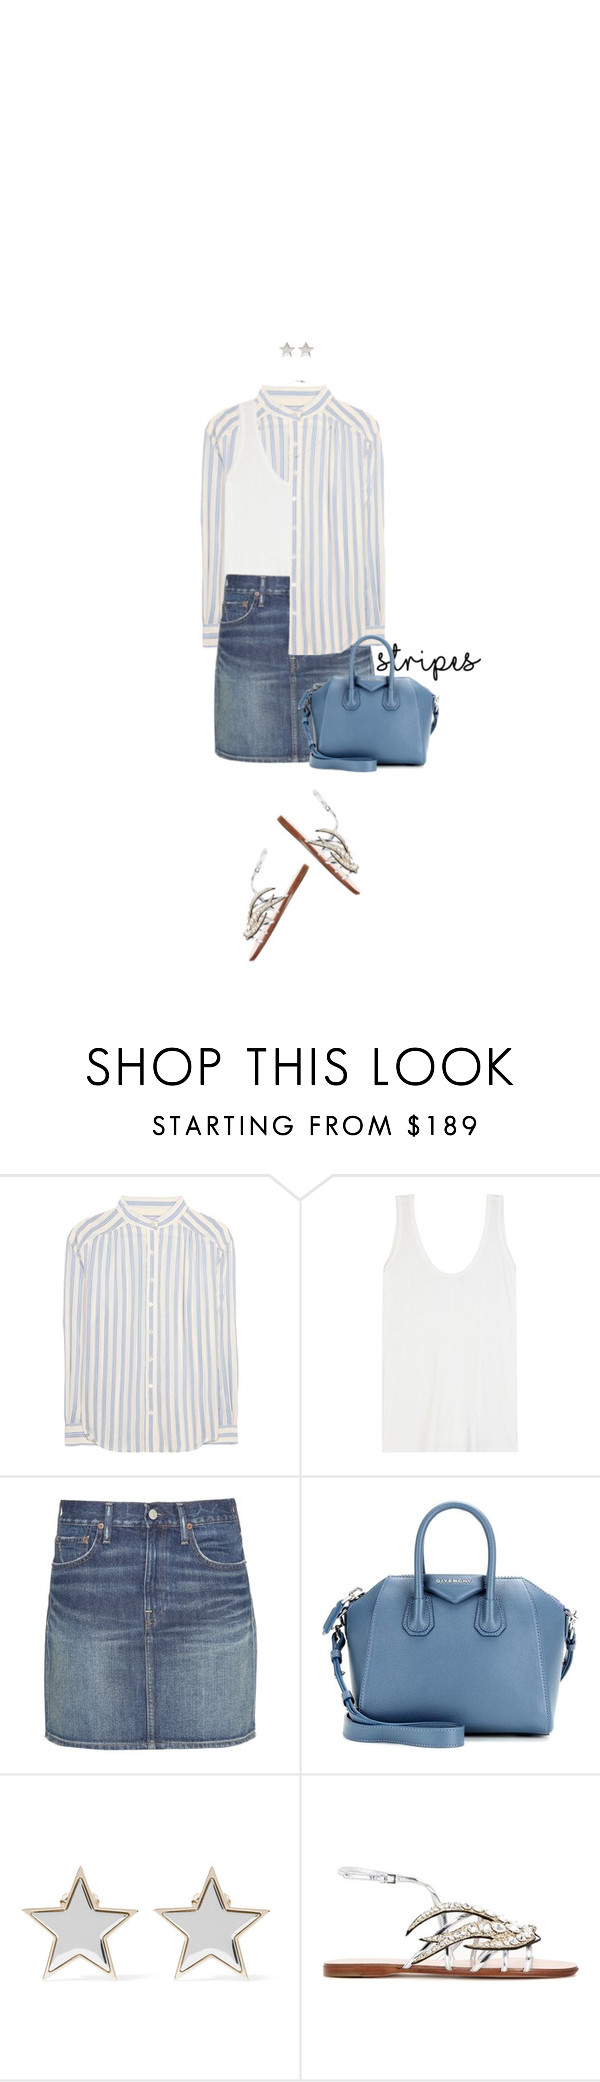 """Blues Stripe"" by hollowpoint-smile ❤ liked on Polyvore featuring Closed, The Row, Polo Ralph Lauren, Givenchy and Miu Miu"